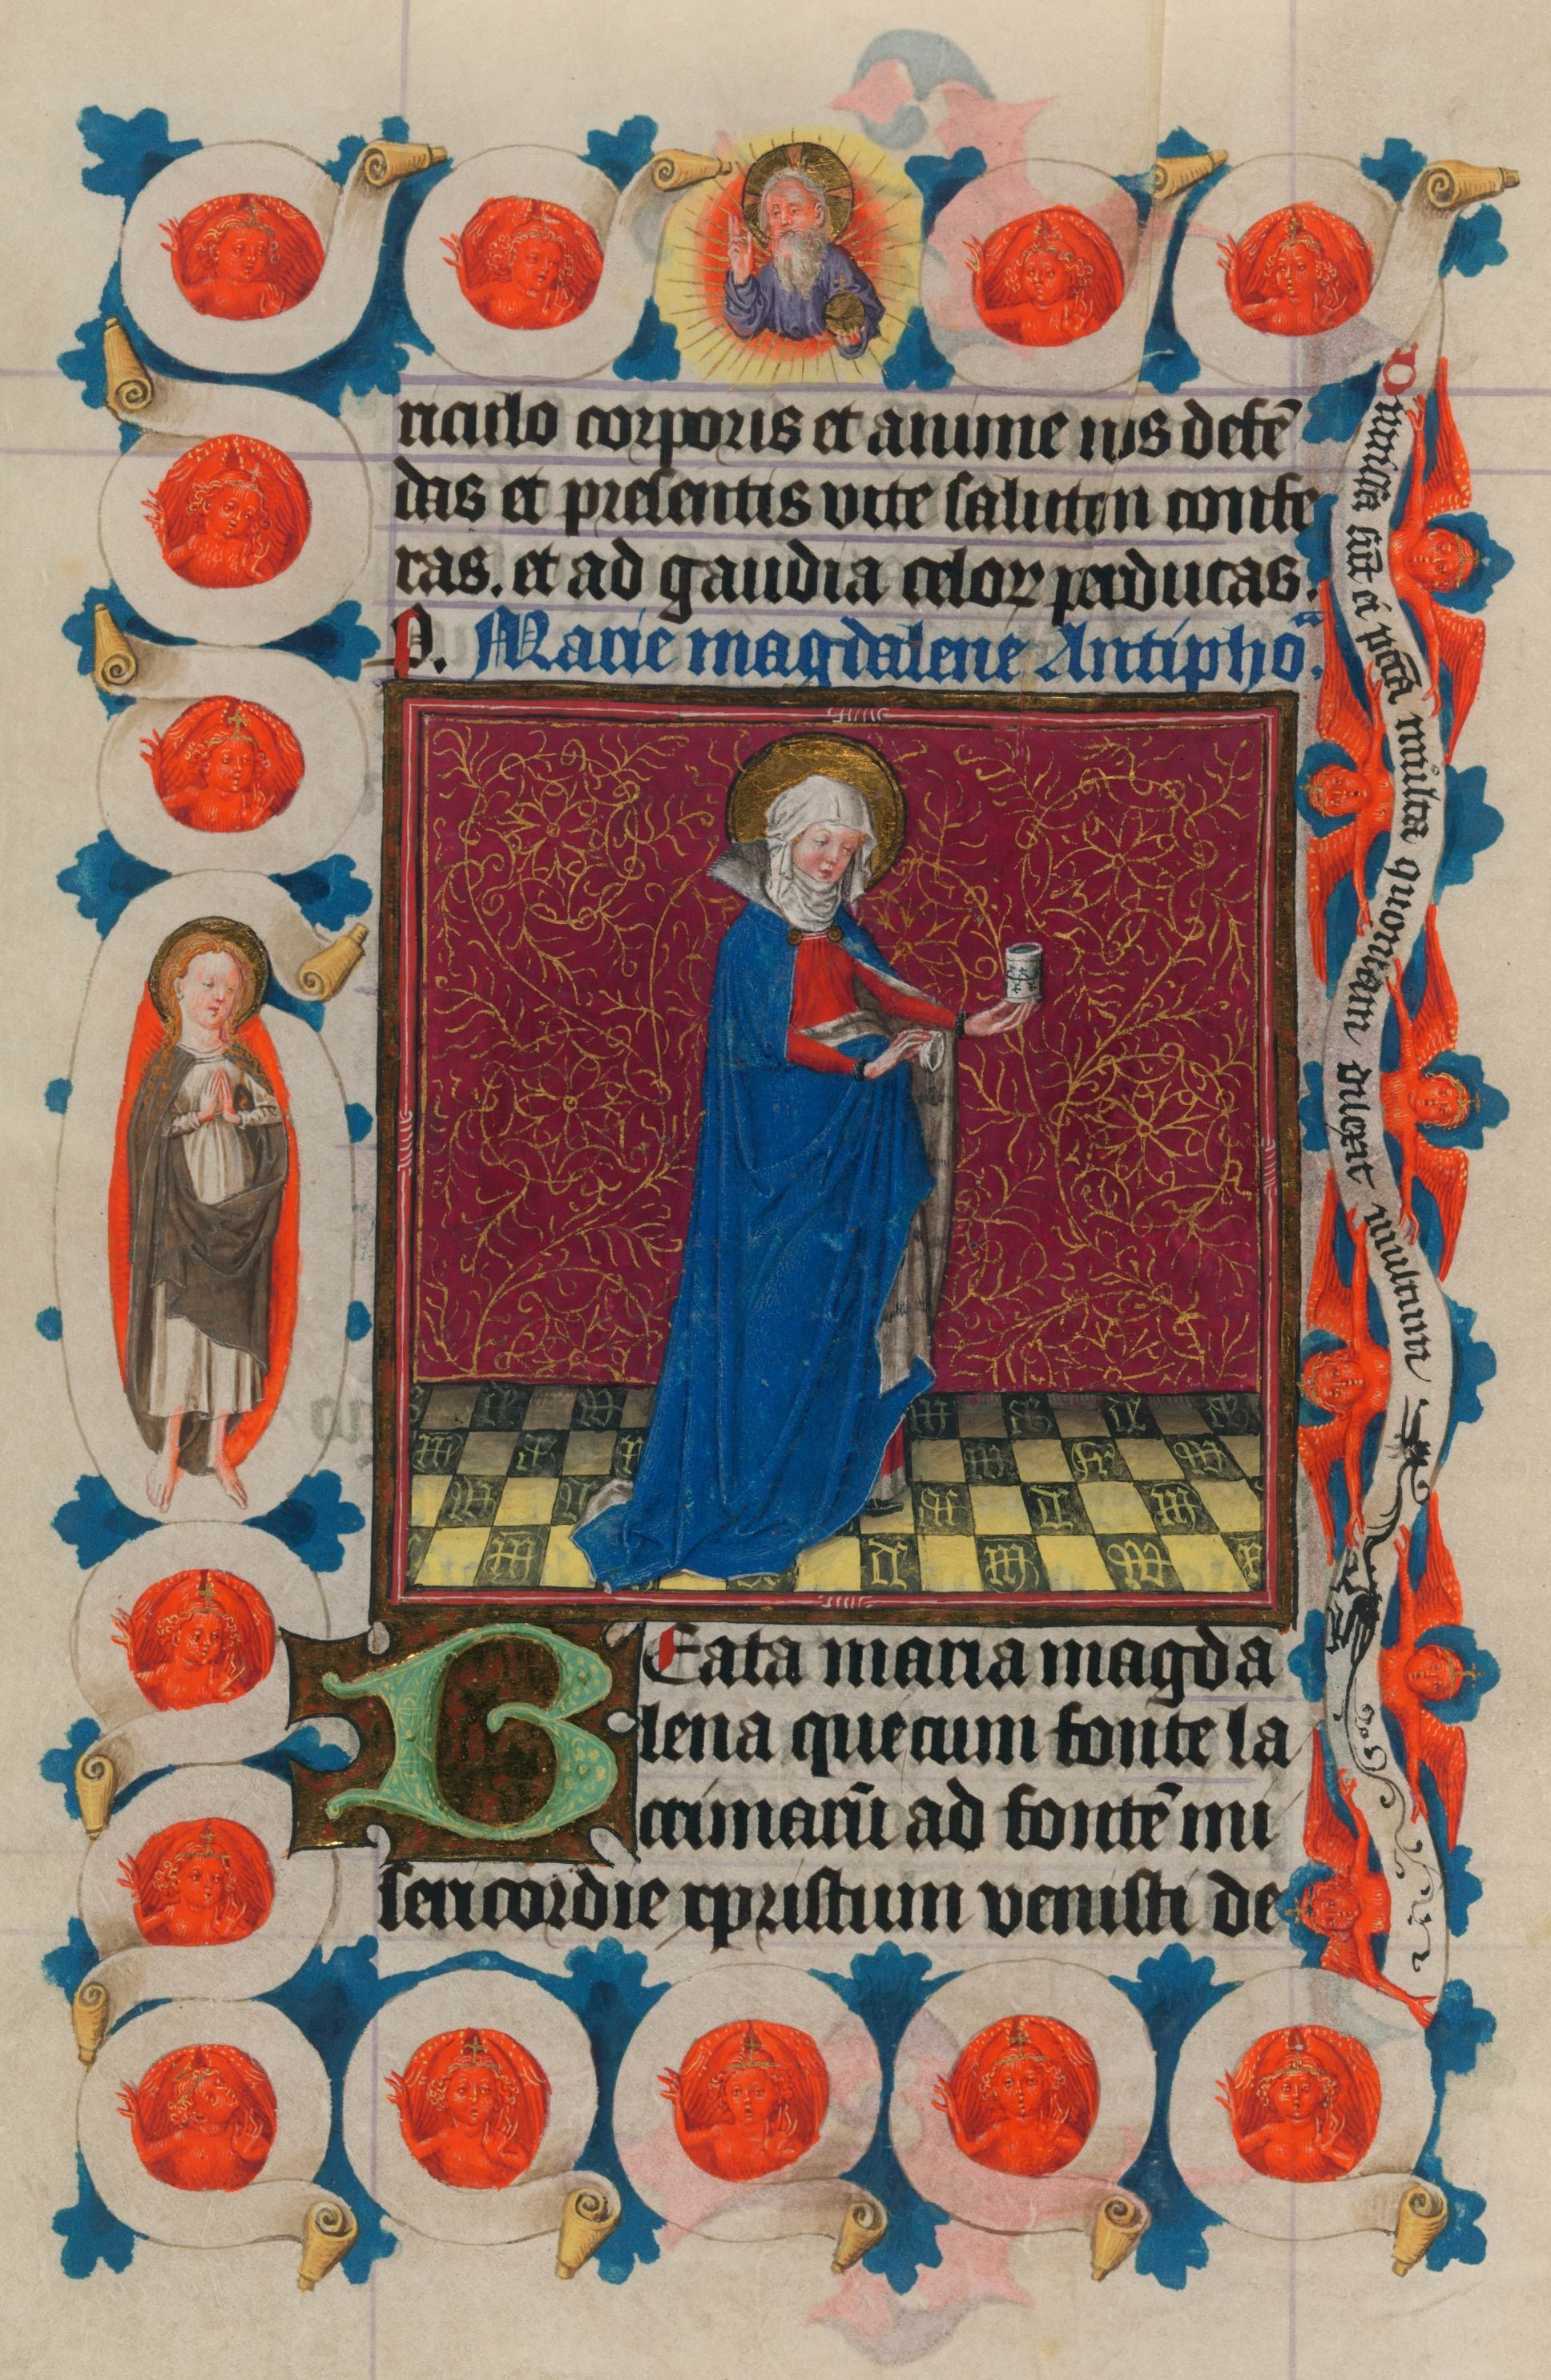 Ms M 917 945 Ff 97v 98r Medieval Art Book Of Hours Ancient Books